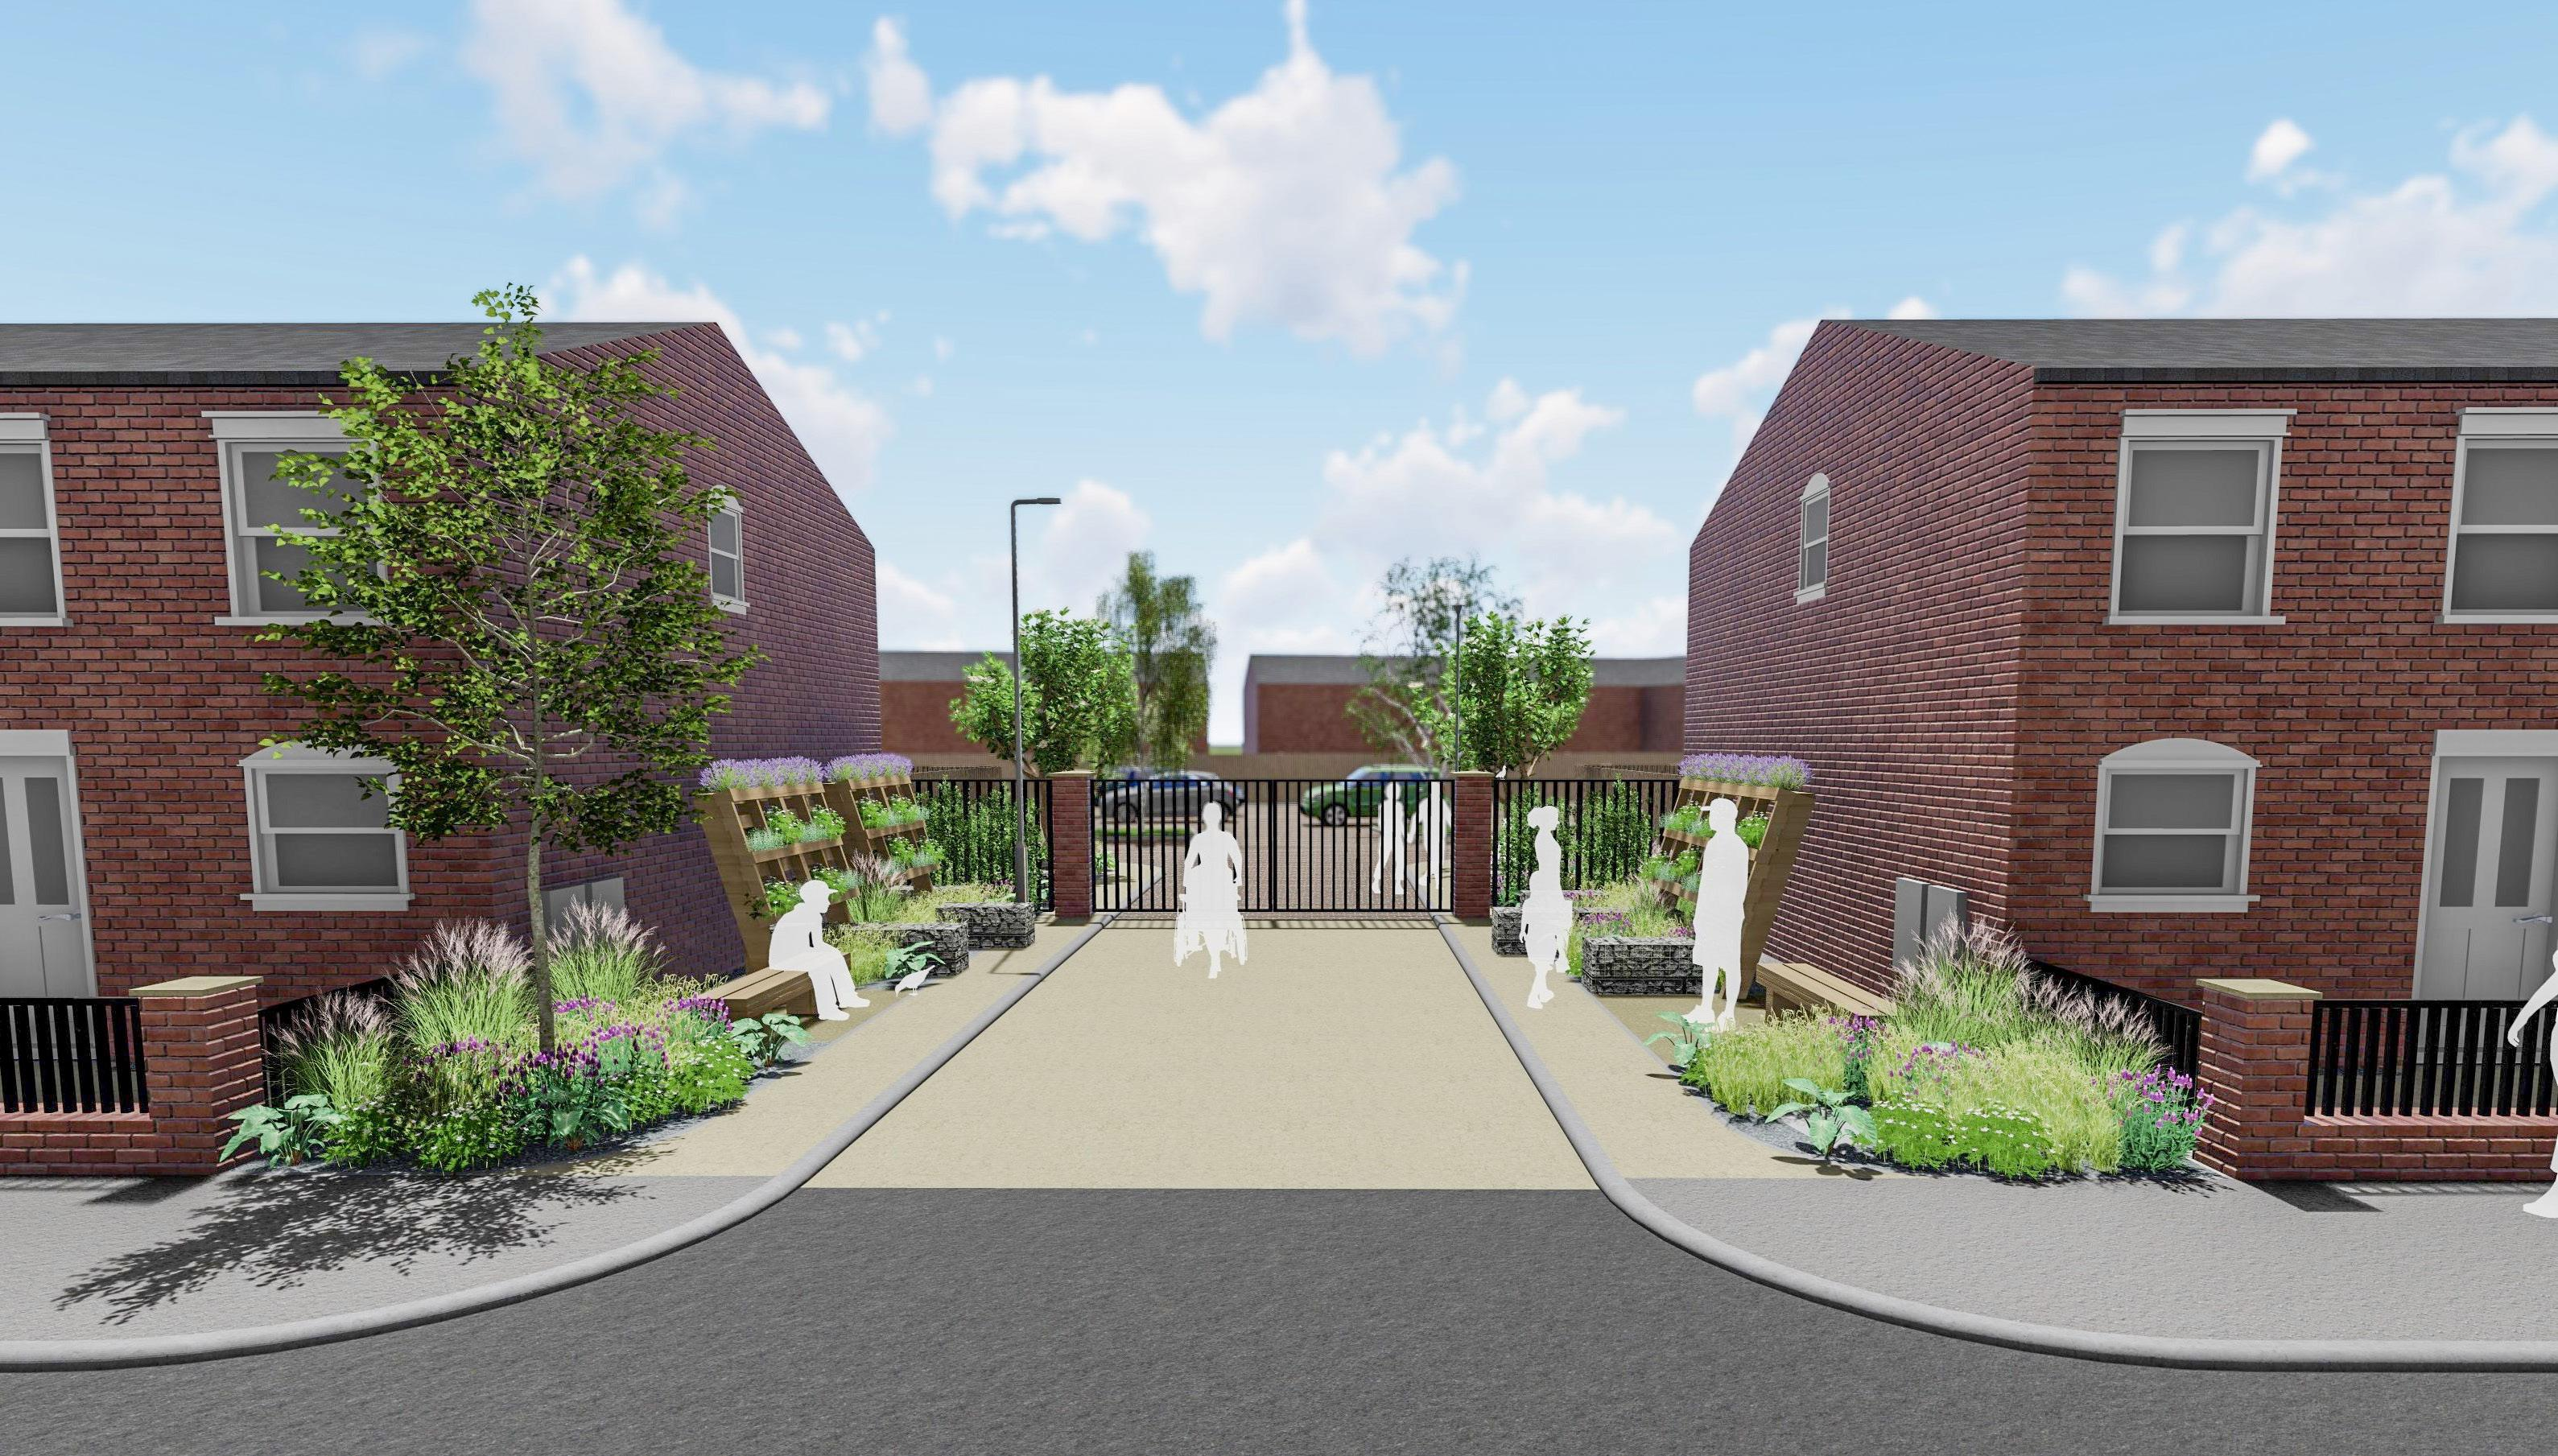 Page 32 of Heron Street – a model for green capsule street space